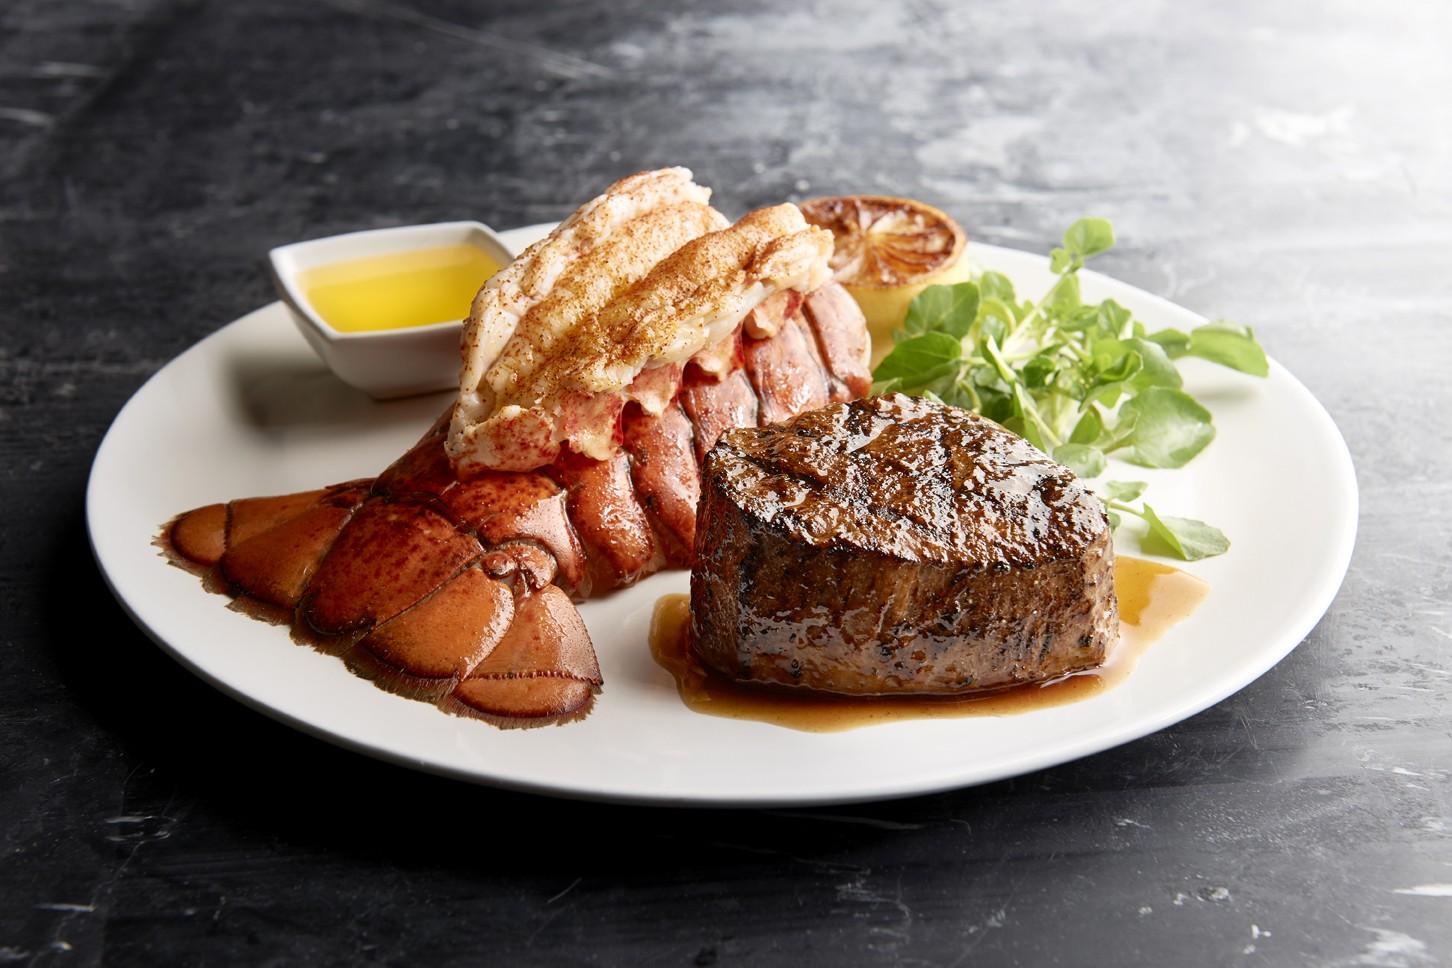 Morton's Valentine's Dinner at Morton's the Steakhouse in Portland, OR on Feb. 10-14 2017 ...